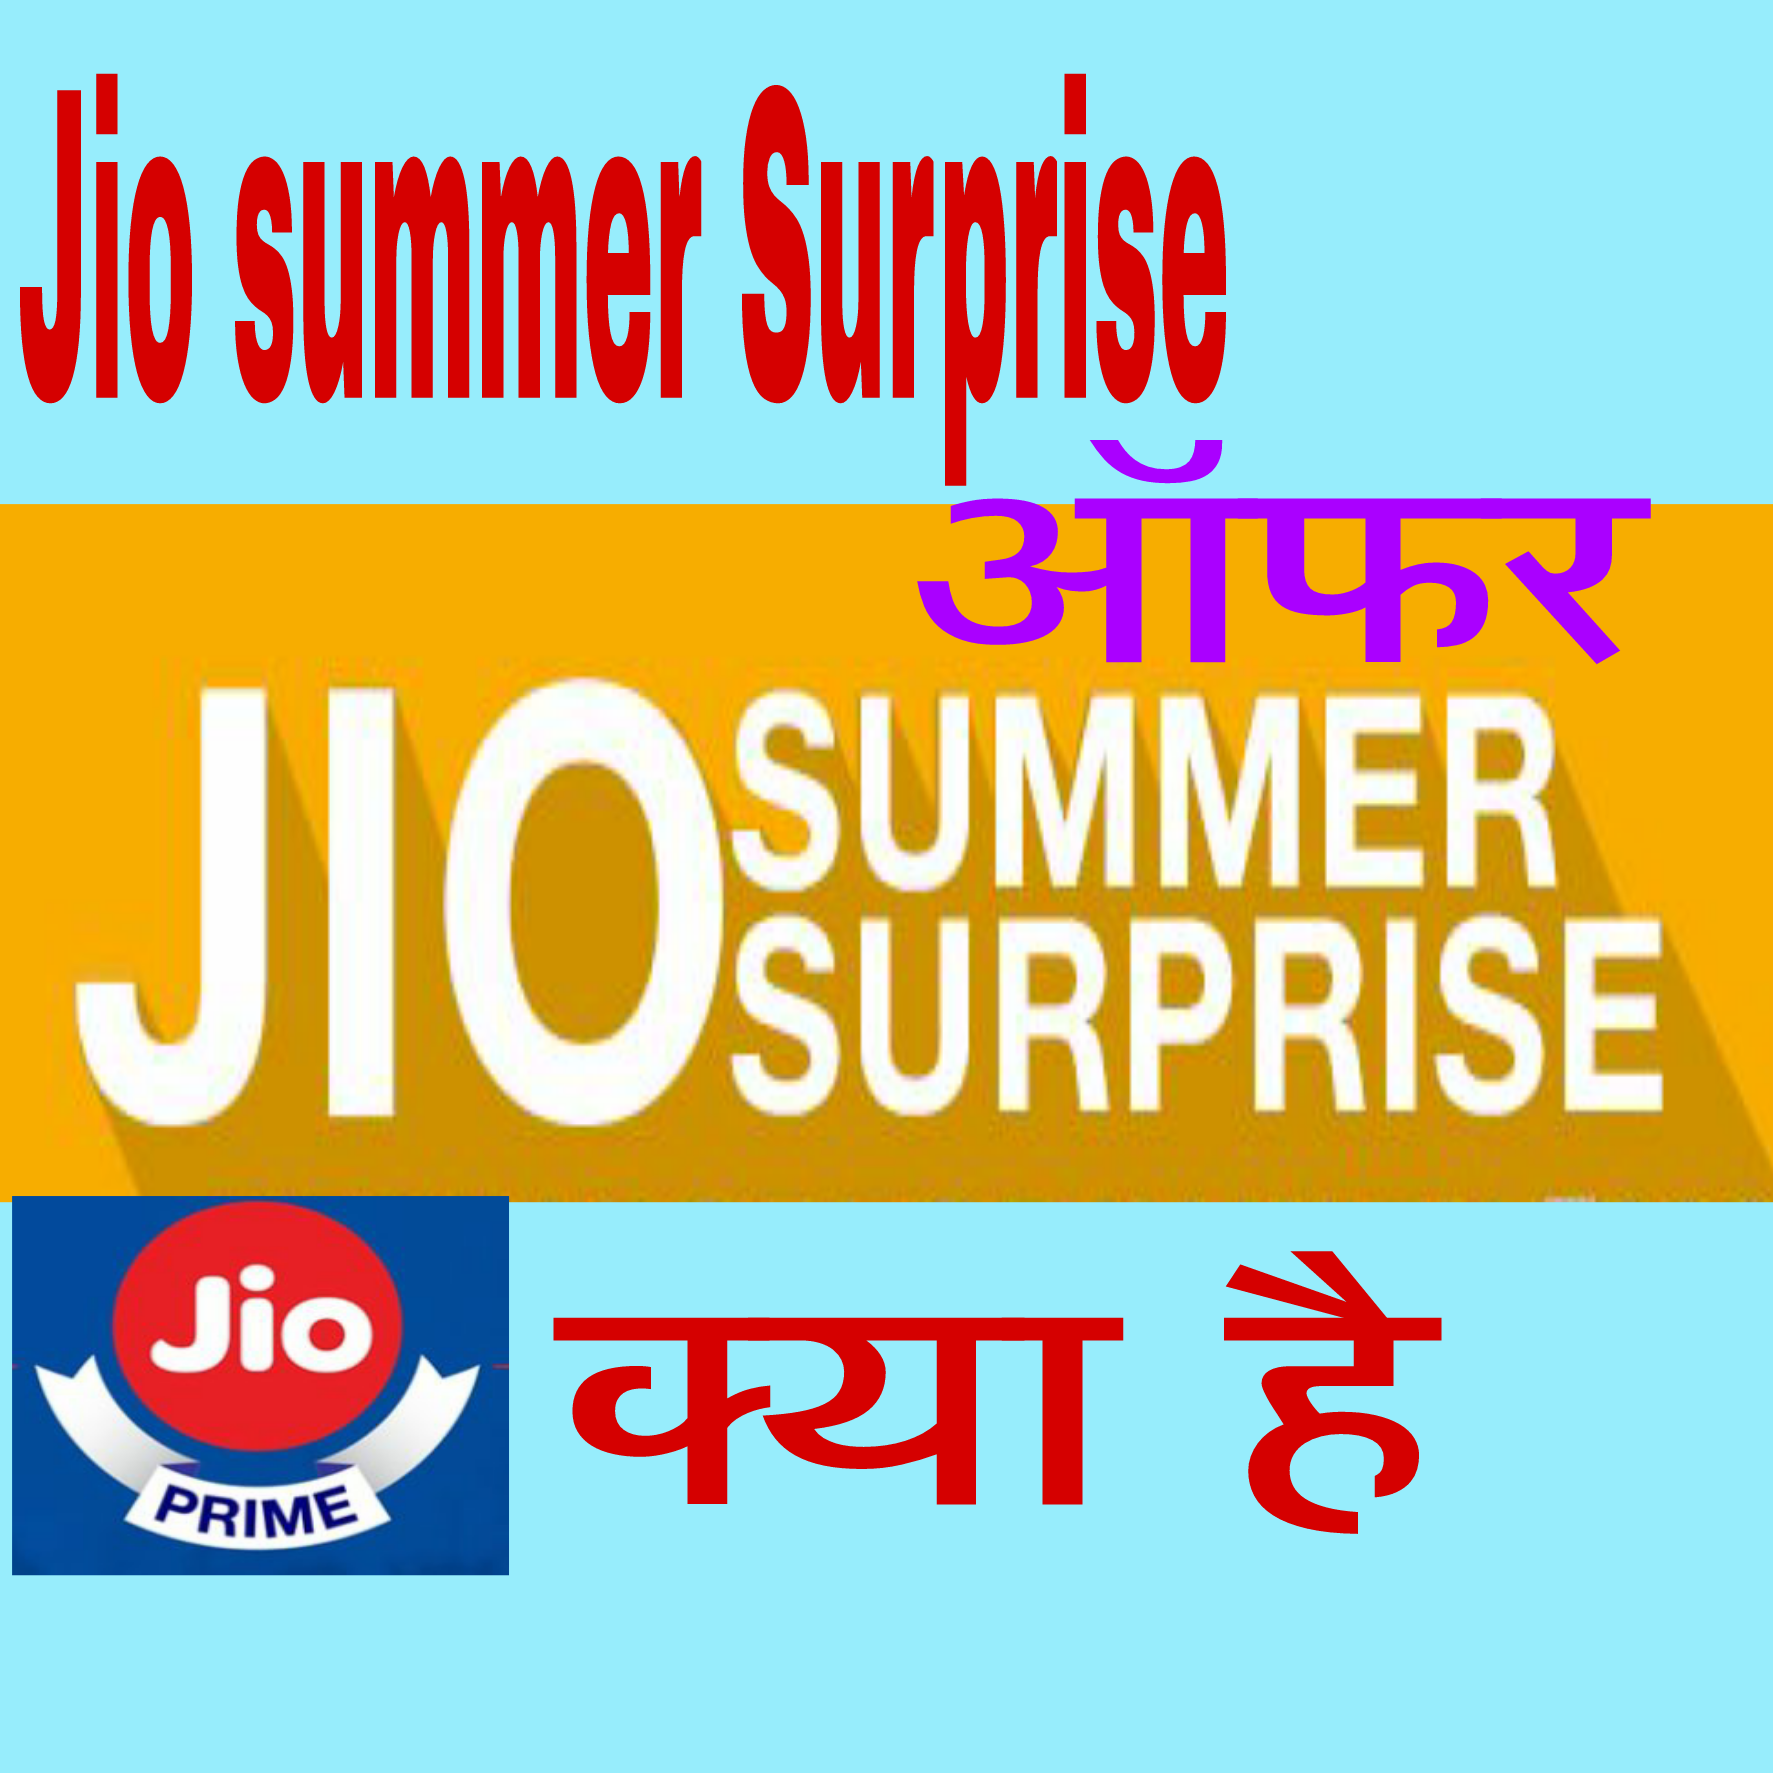 Jio summer surprise ki puti details hindi me yahan dekhe